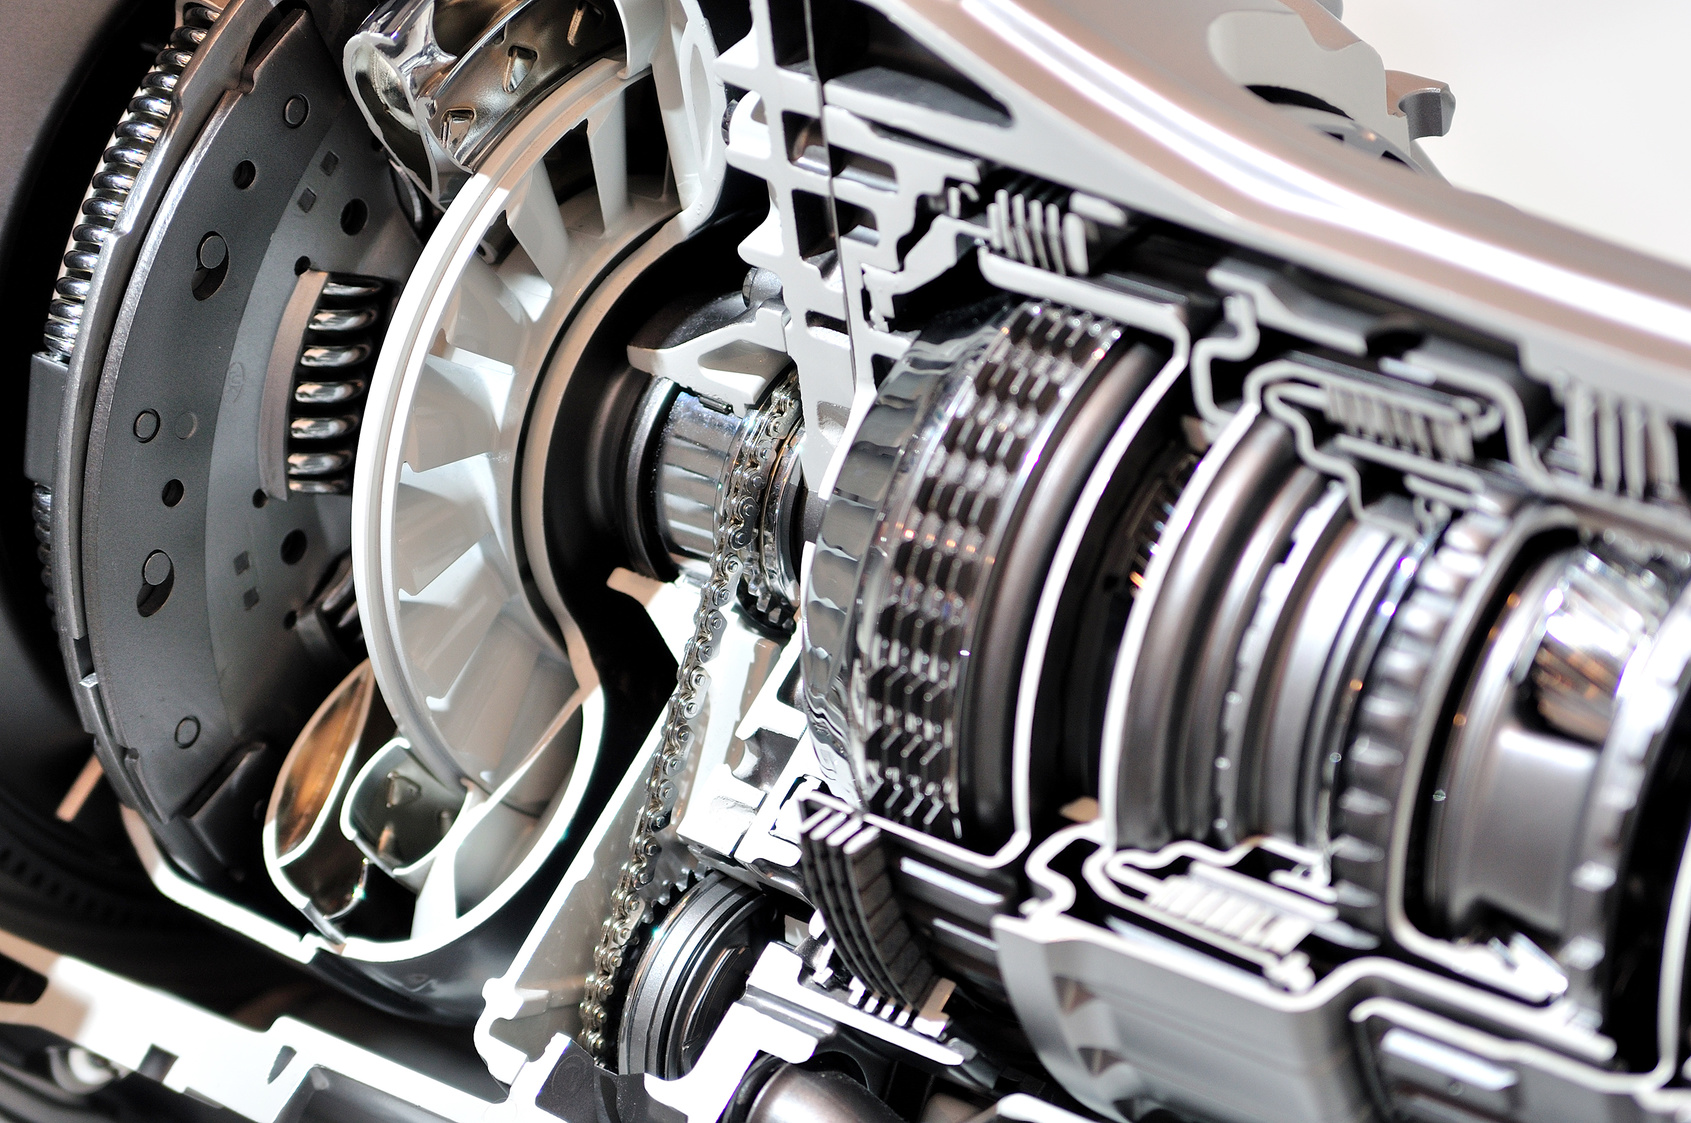 Repair Automatic Automatic Gear Box Repair Leeds Transmission Services